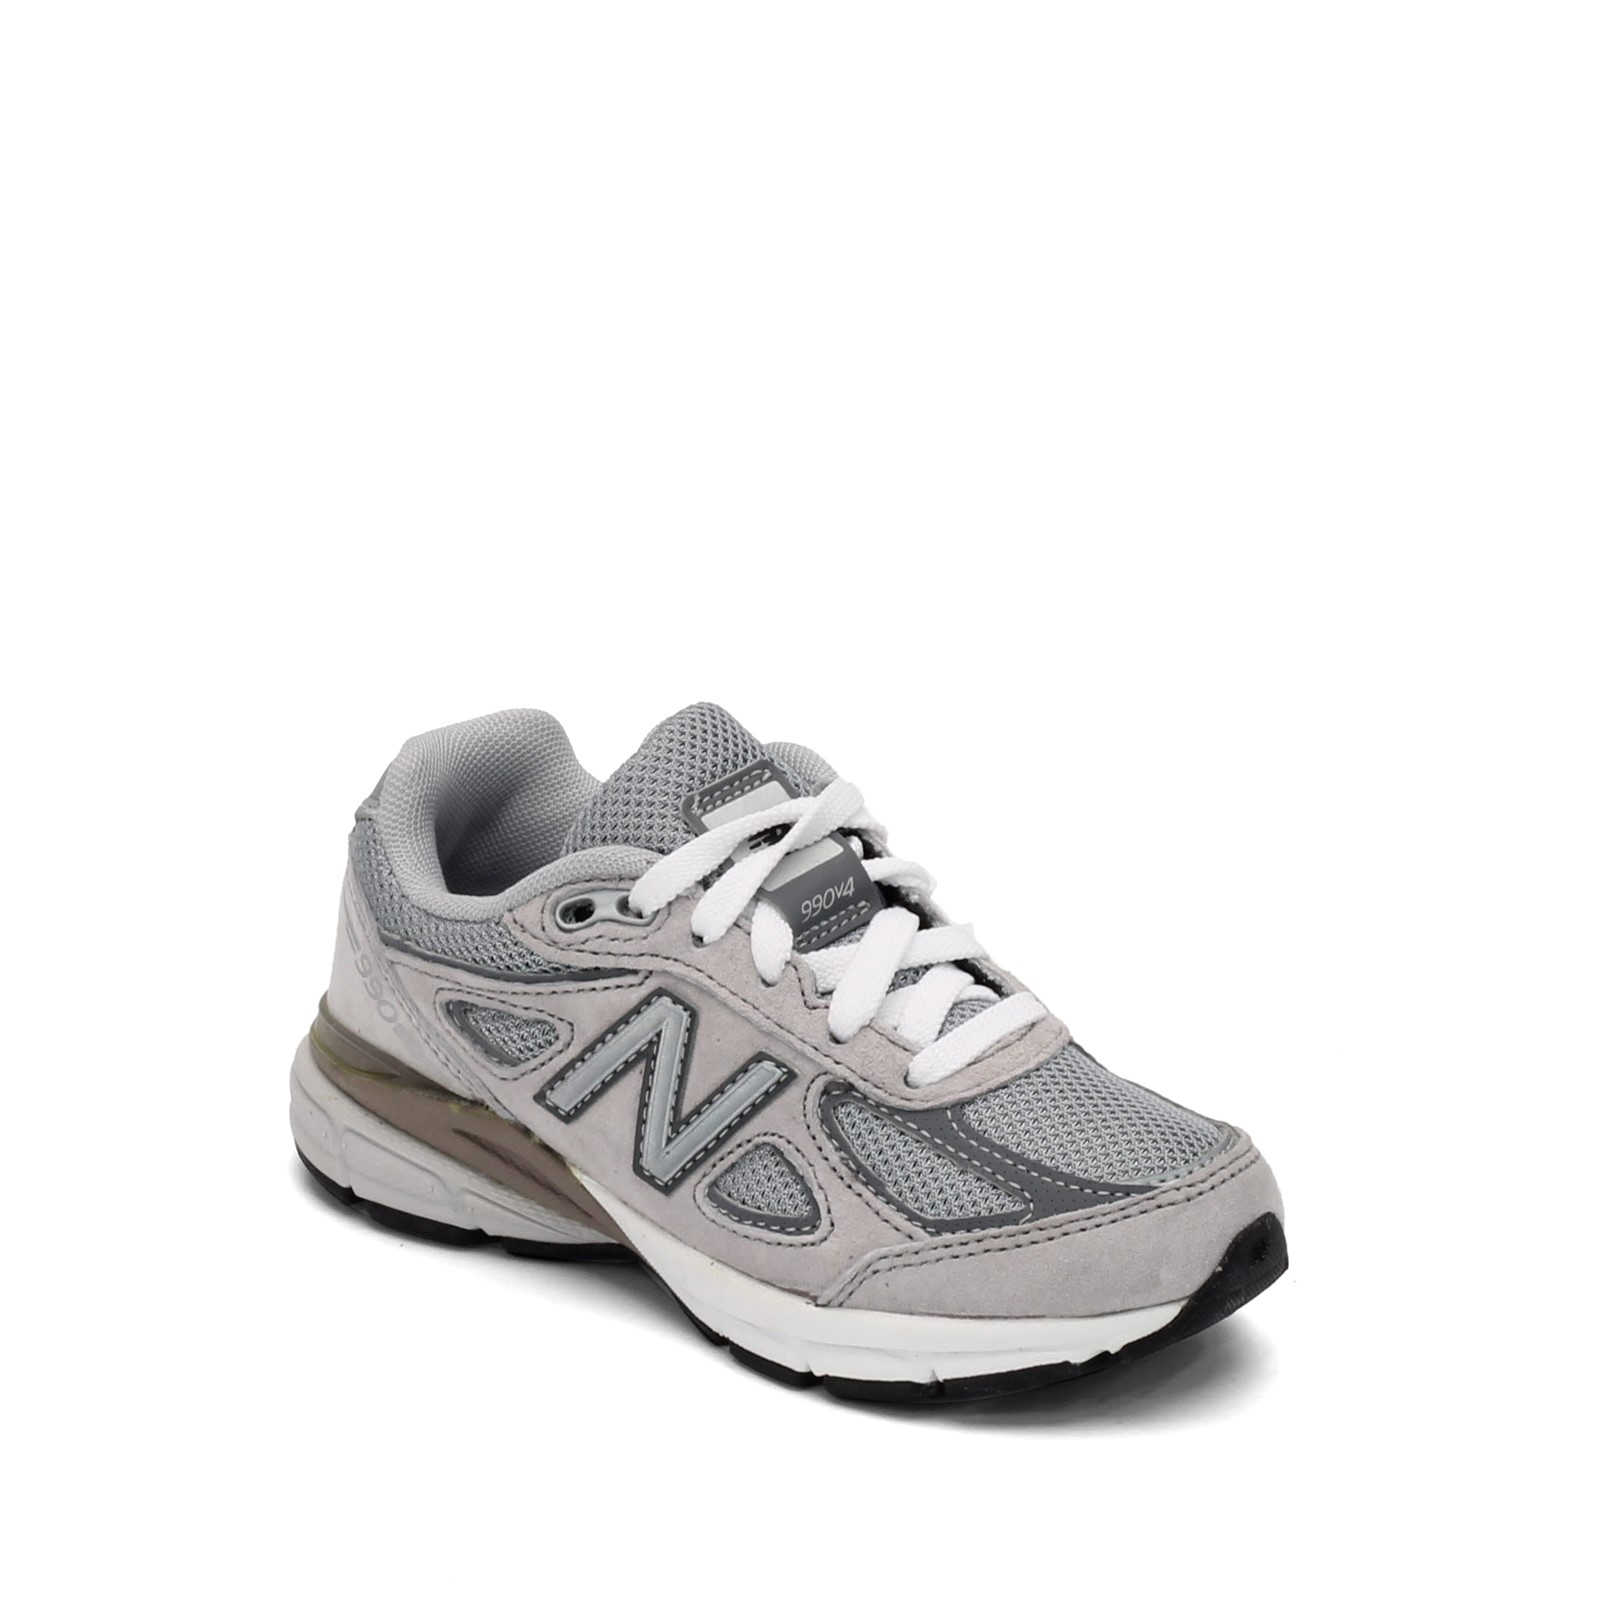 watch 6f18e 8dd71 Boy's New Balance, 990 v4 Athletic Sneaker - Little Kid